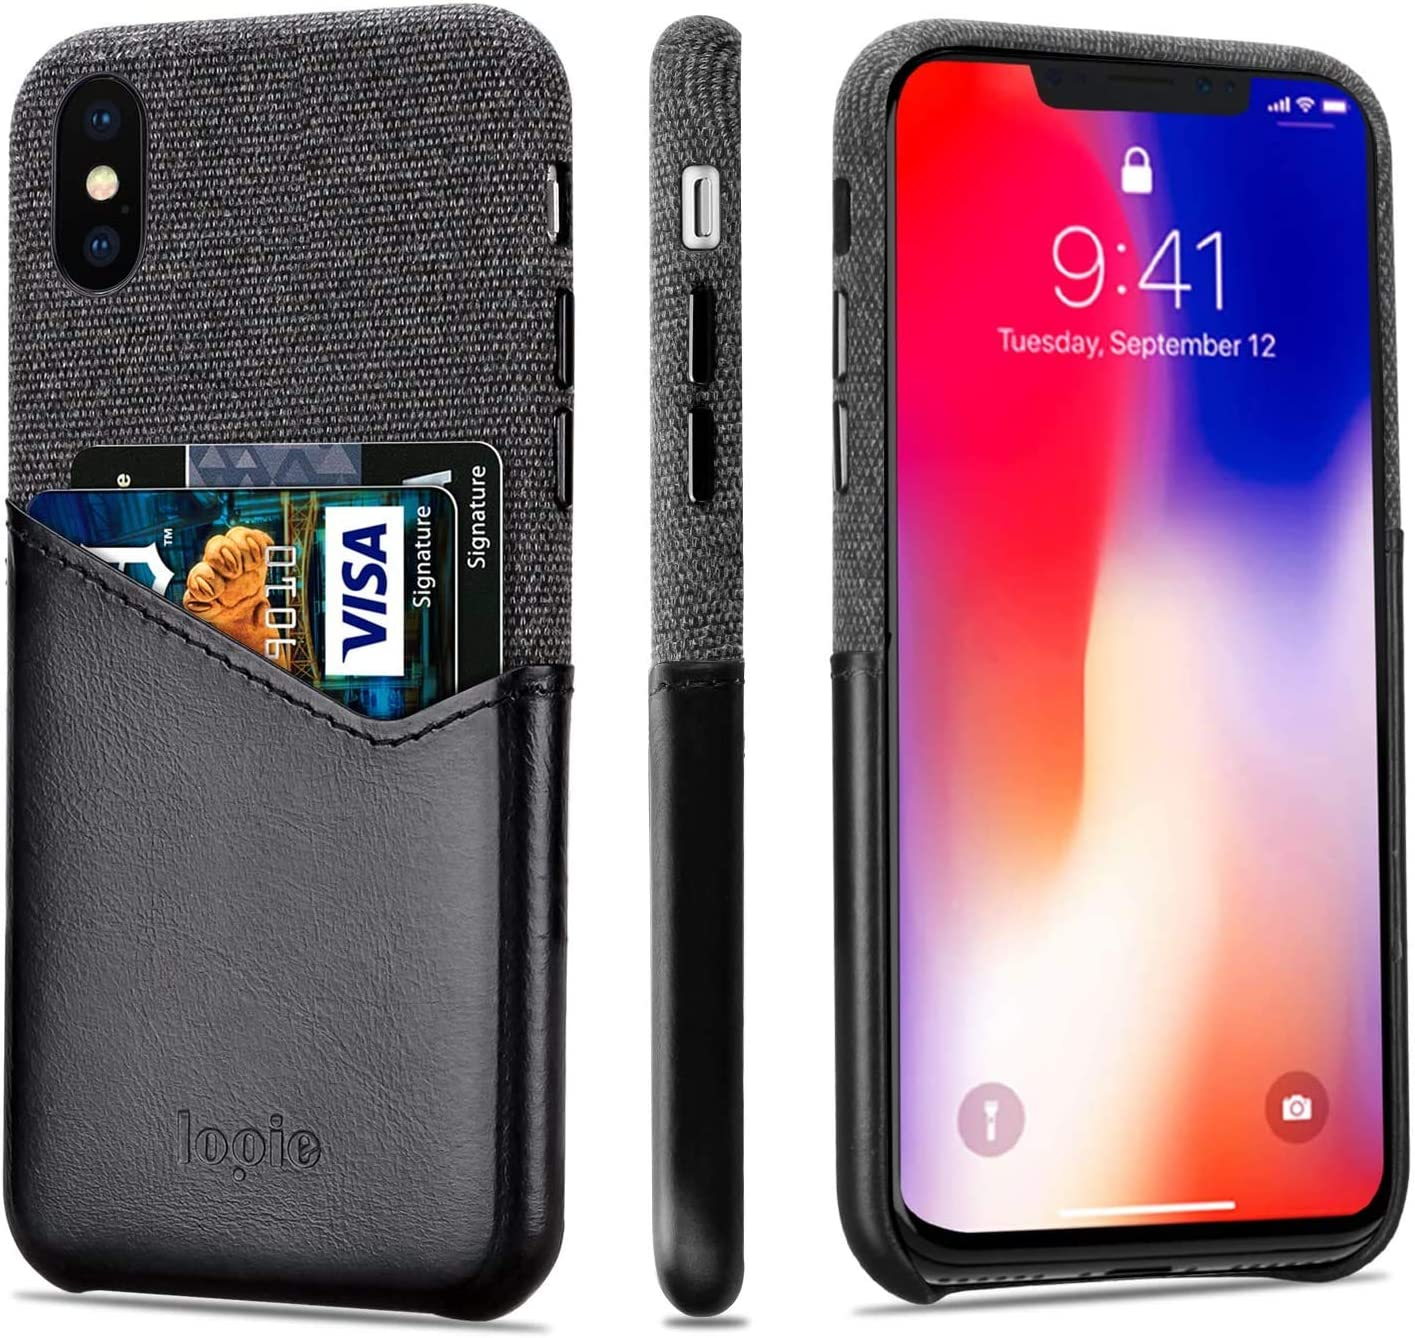 Lopie [Sea Island Cotton Series] Slim Card Case Compatible for iPhone Xs Max, Fabric Protection Cover with Leather Card Holder Slot Design, Black